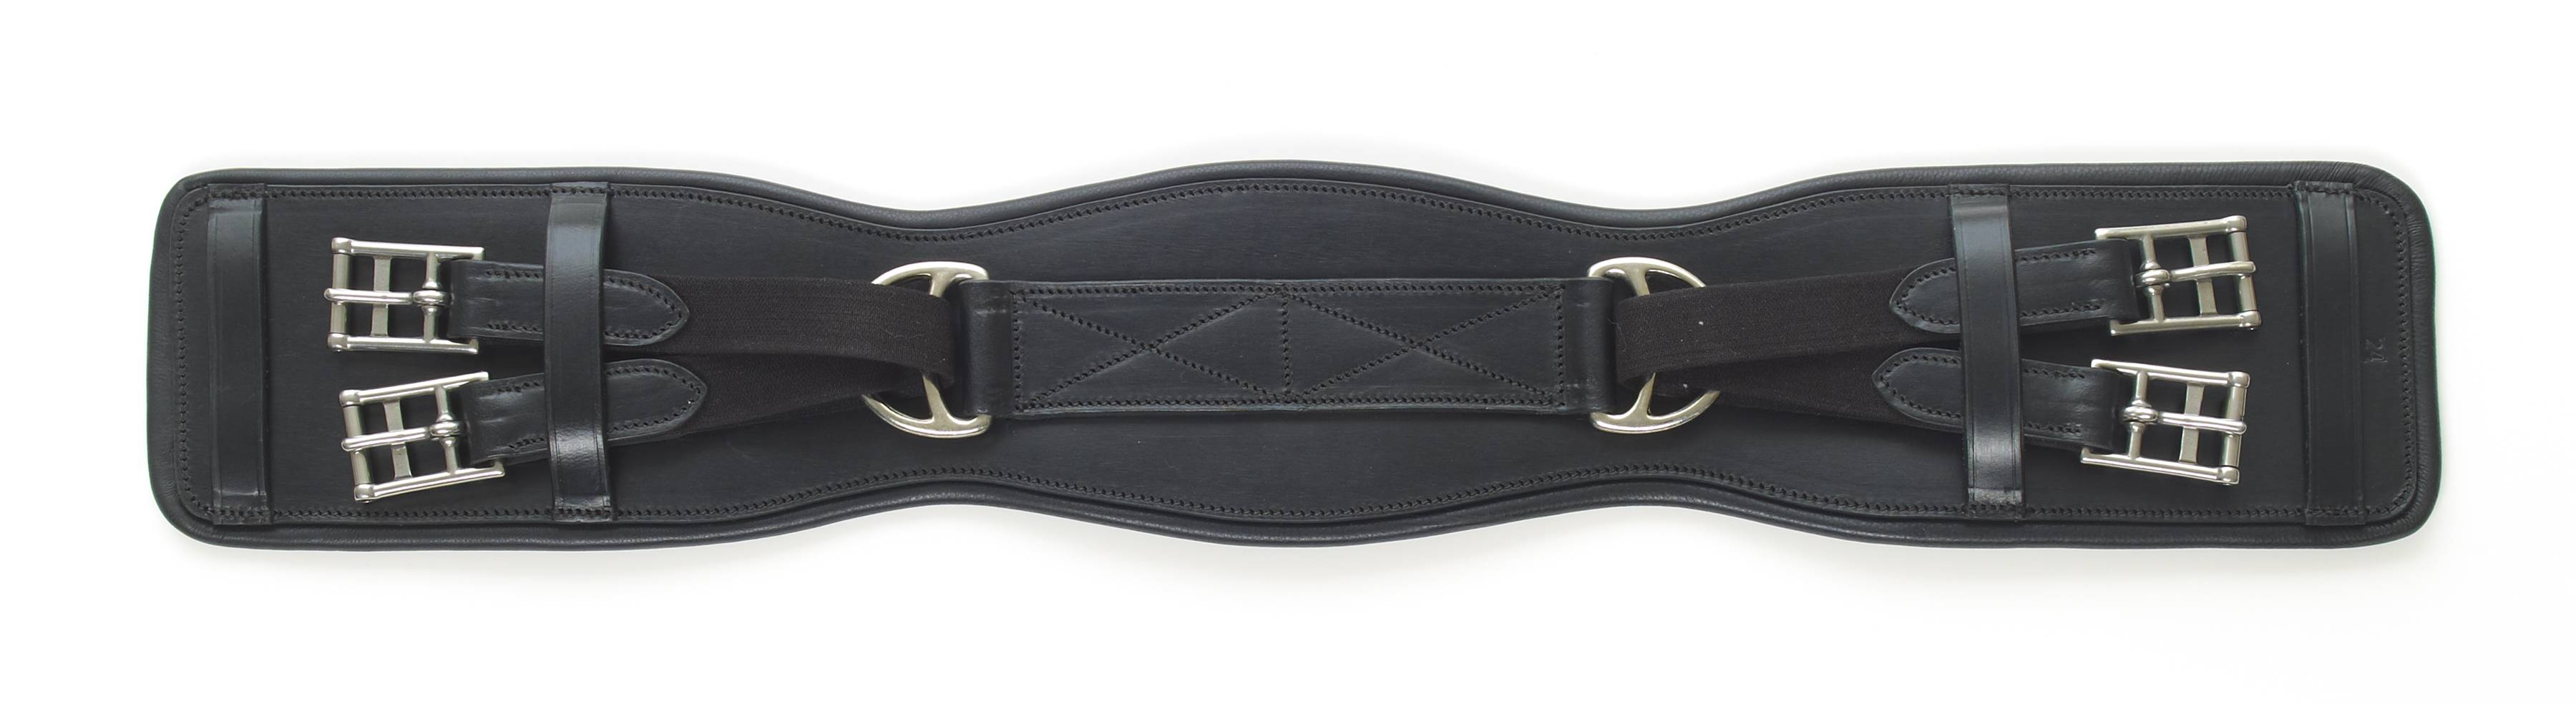 Ovation Humane Overlay Dressage Girth